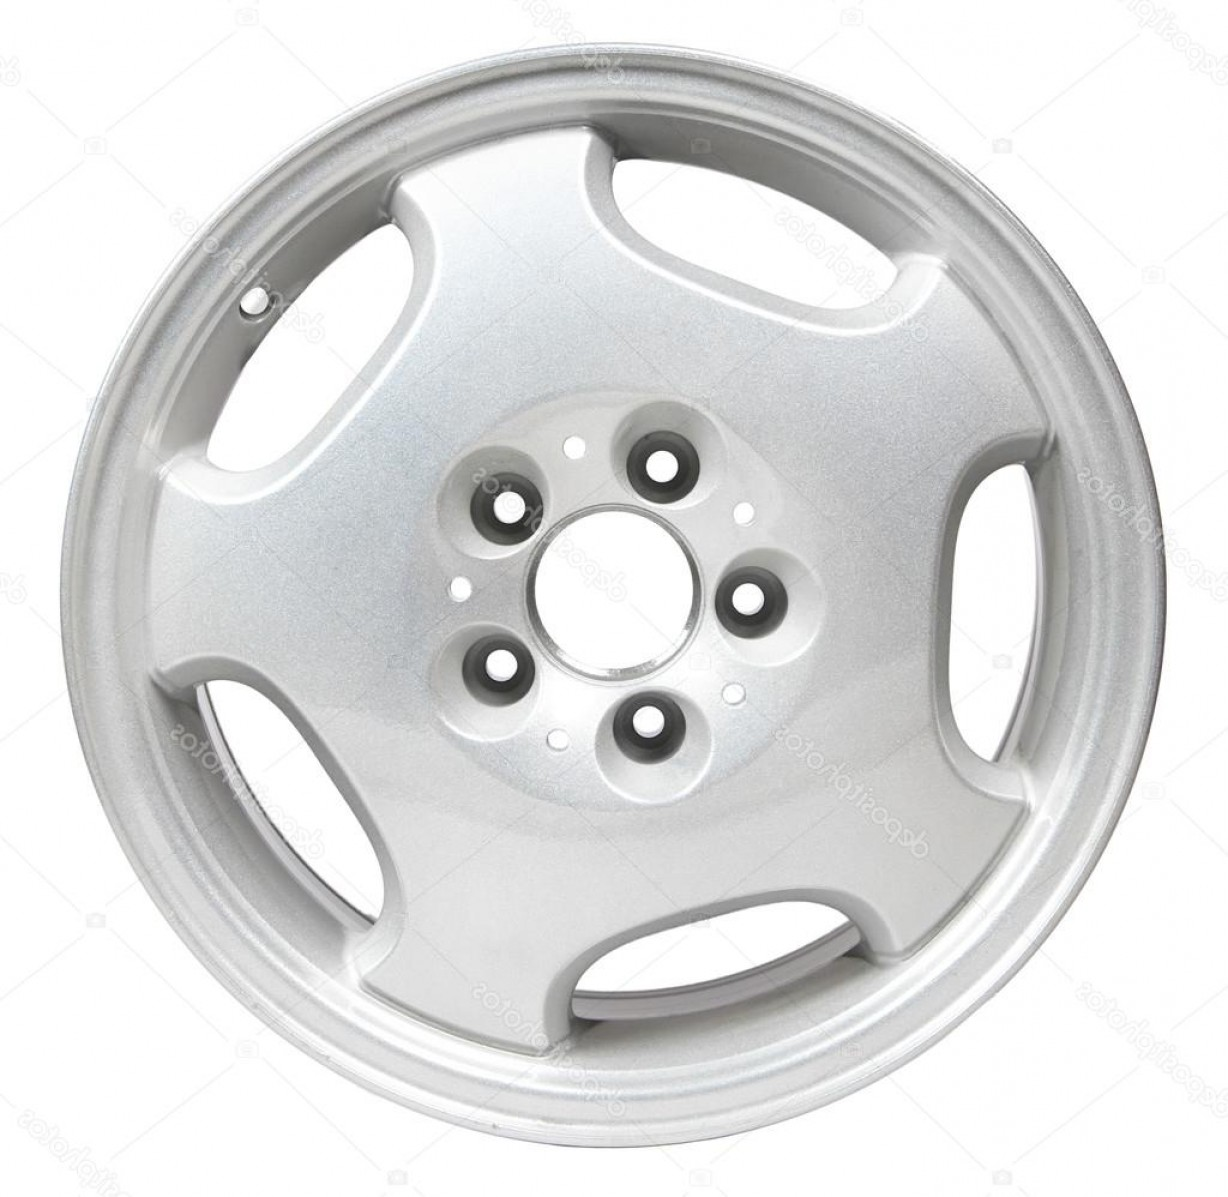 Powder Coating Vector: Stock Photo Powder Coating Of White Wheel